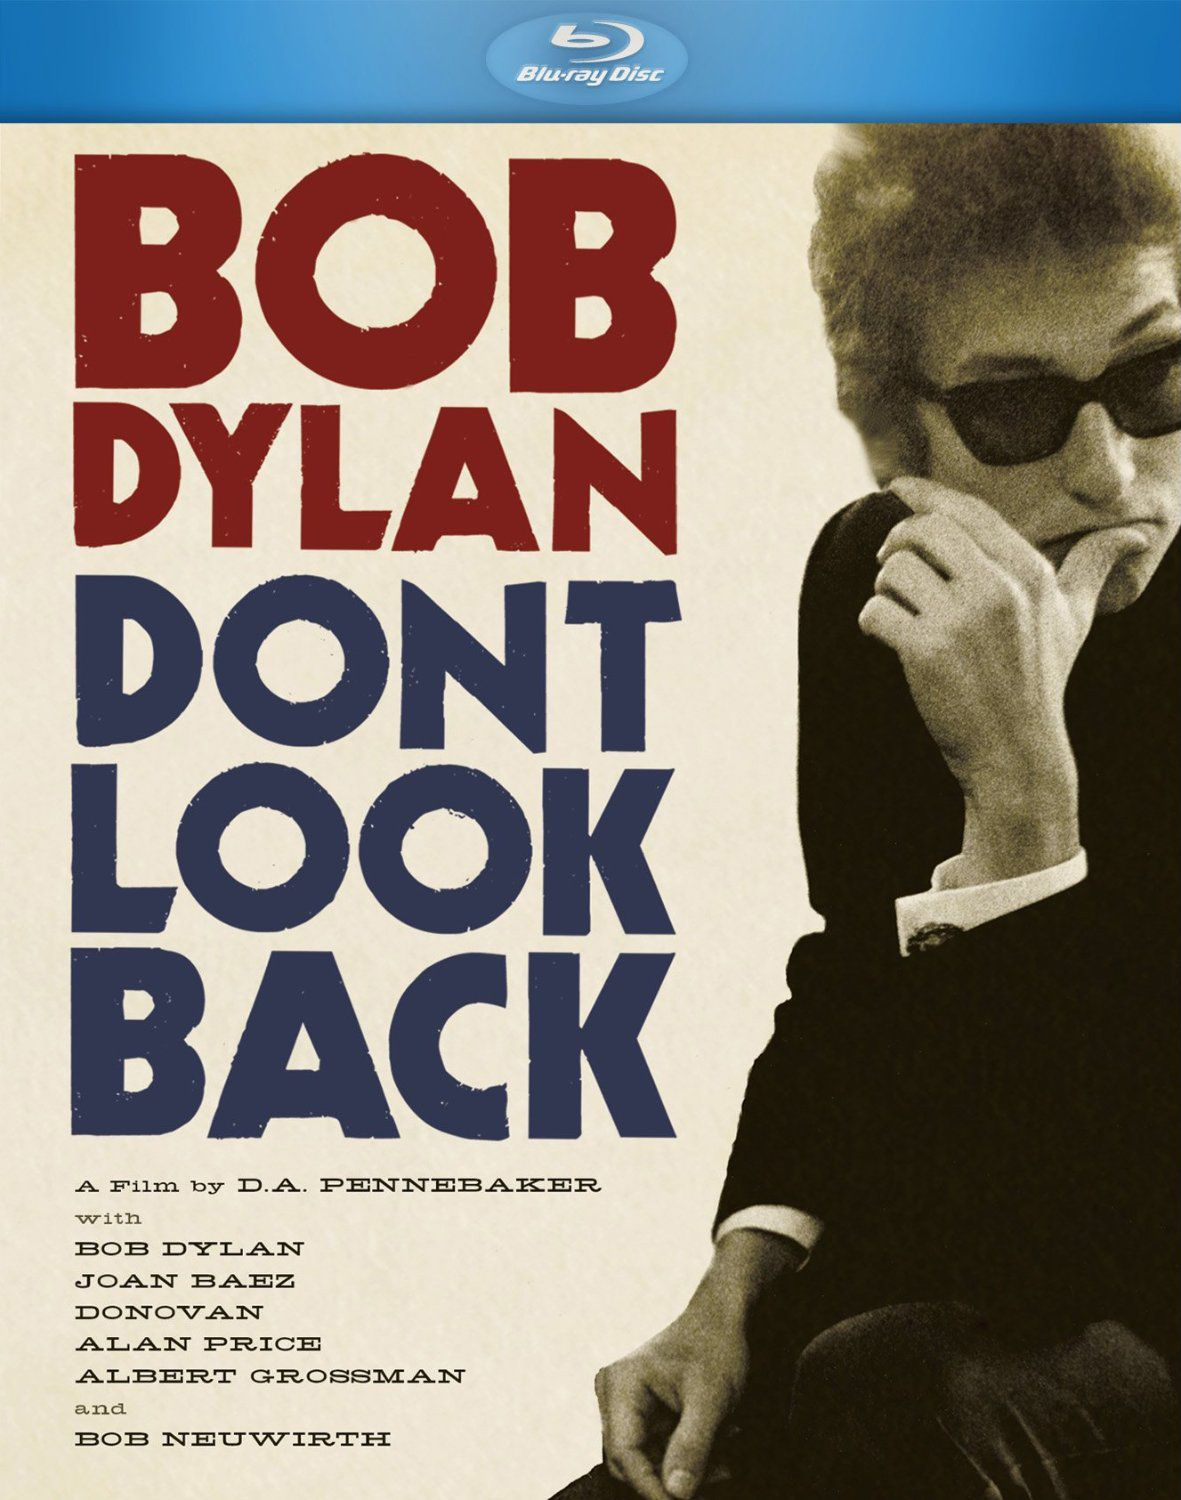 Publicity still for Don't Look Back